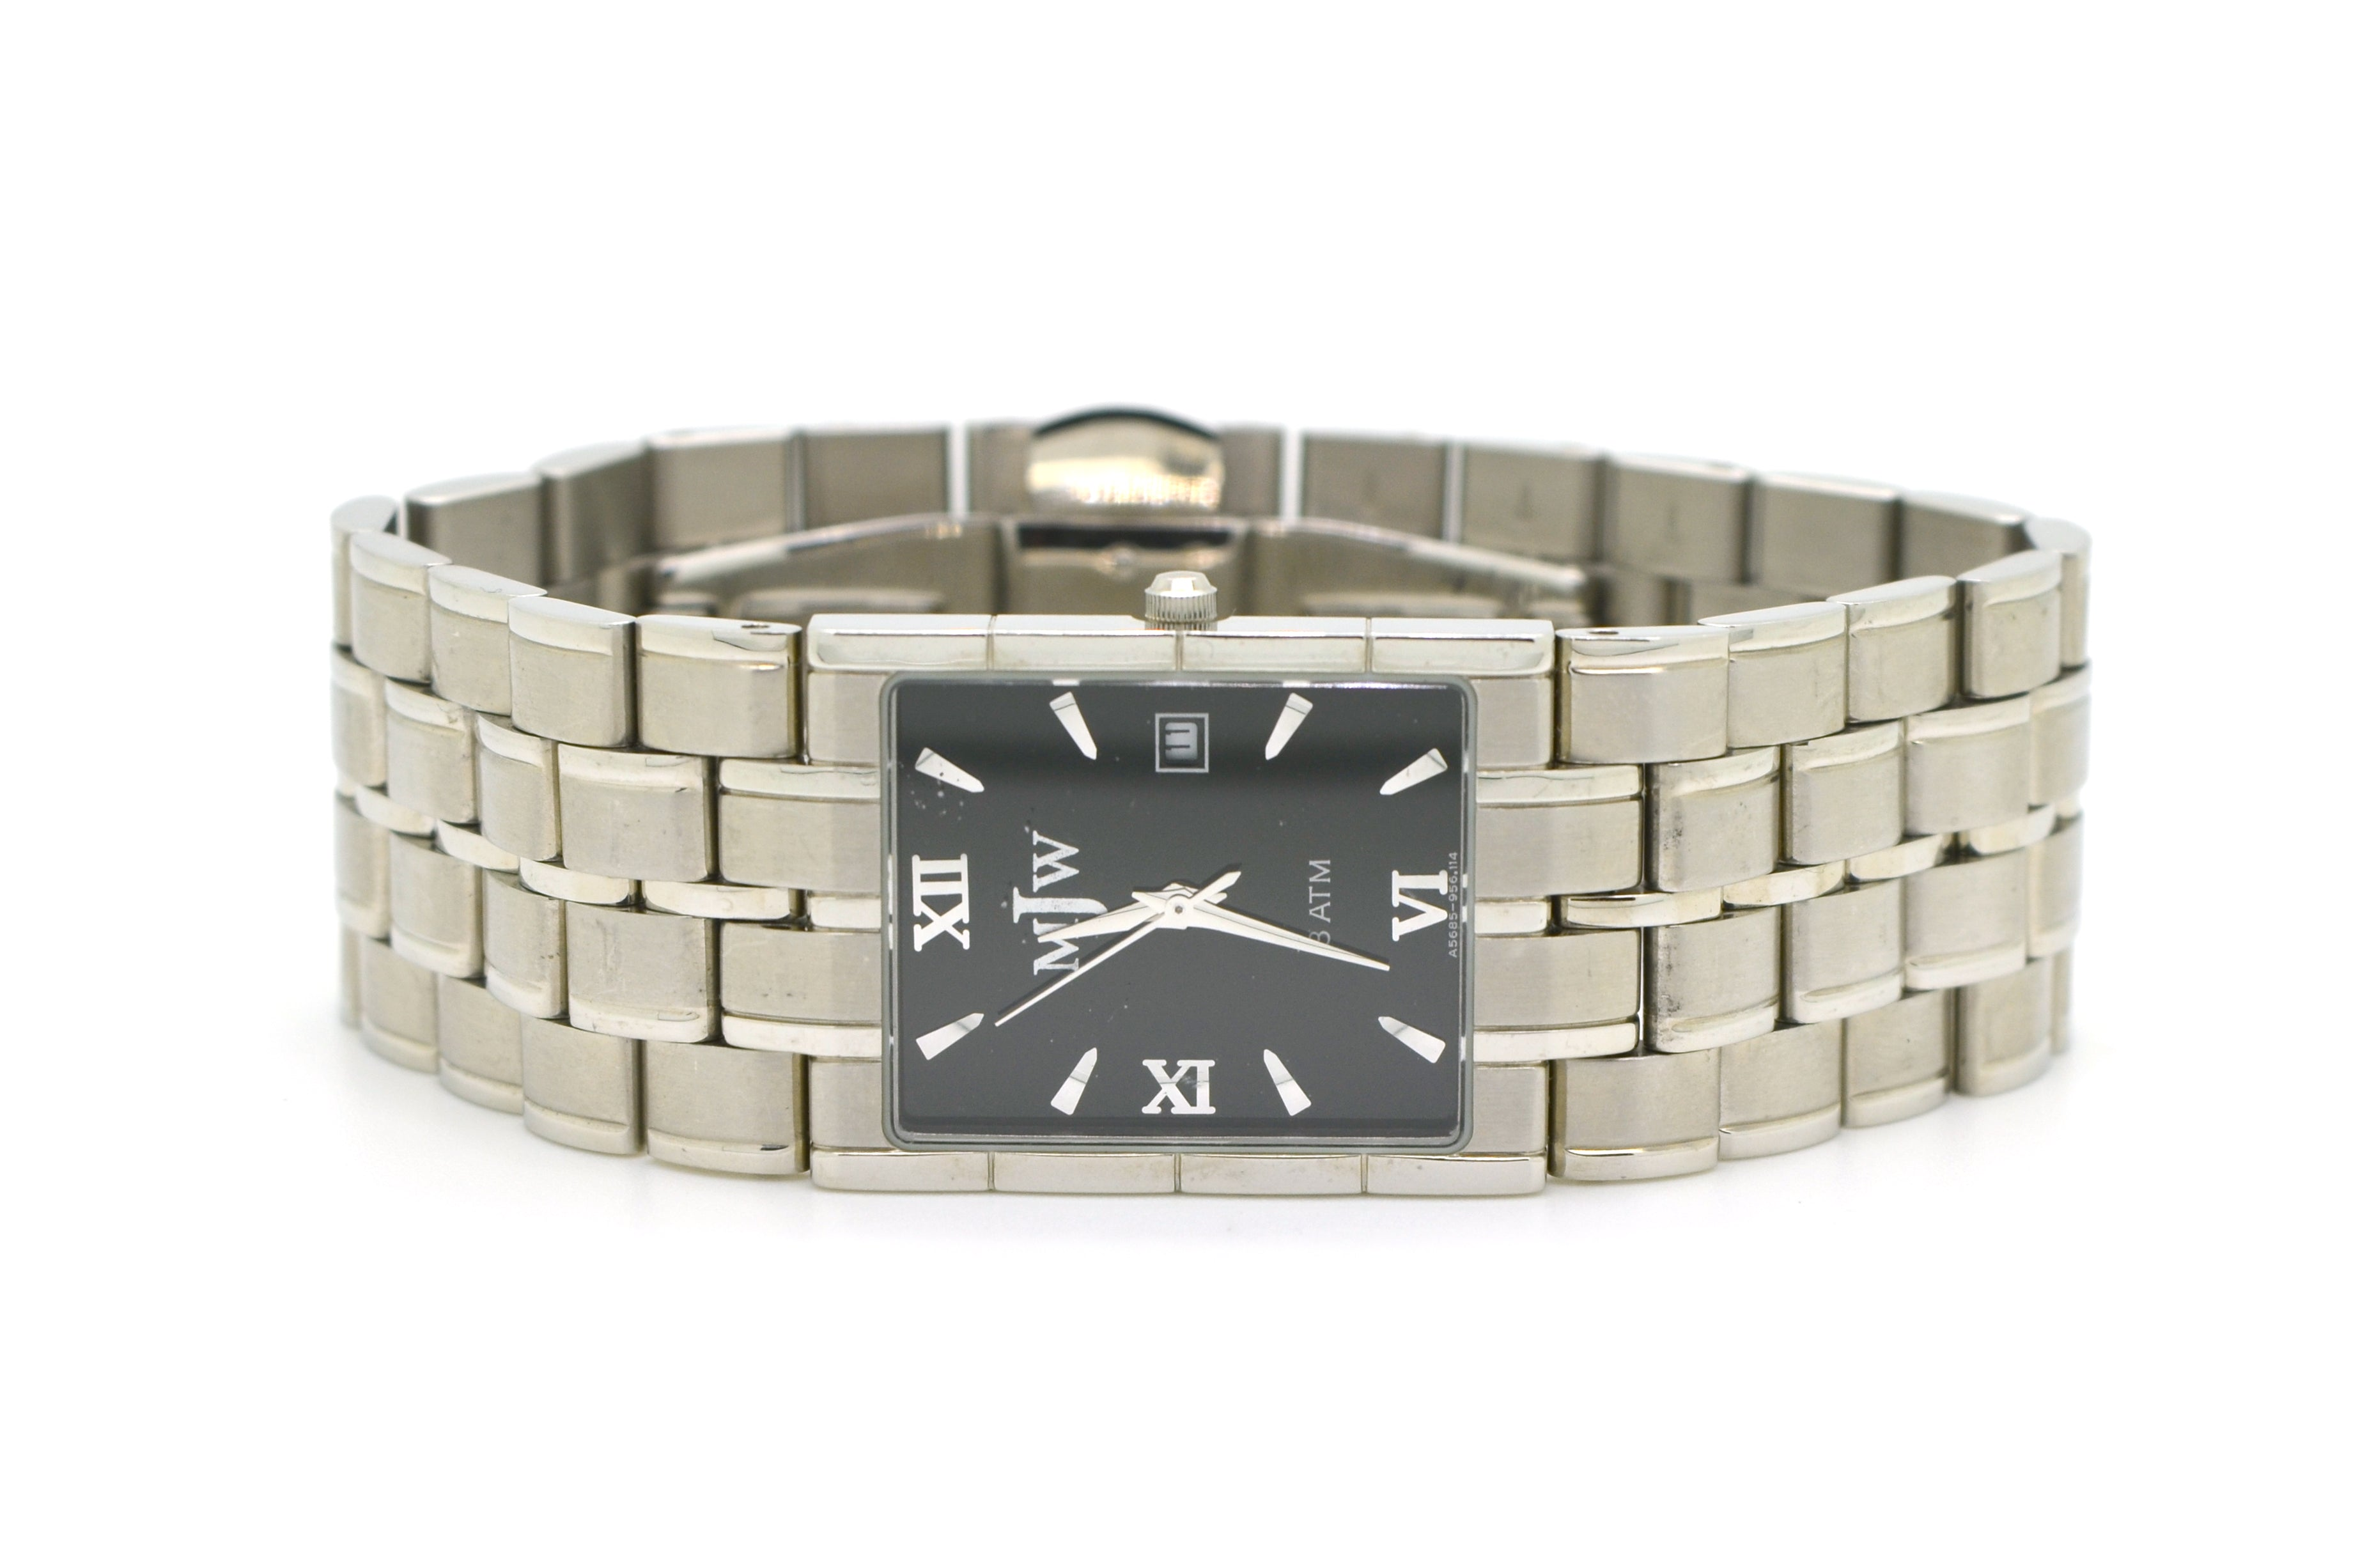 MJW Stainless Steel 3 ATM Quartz Date Watch - Black Dial - 956.114 - 5785